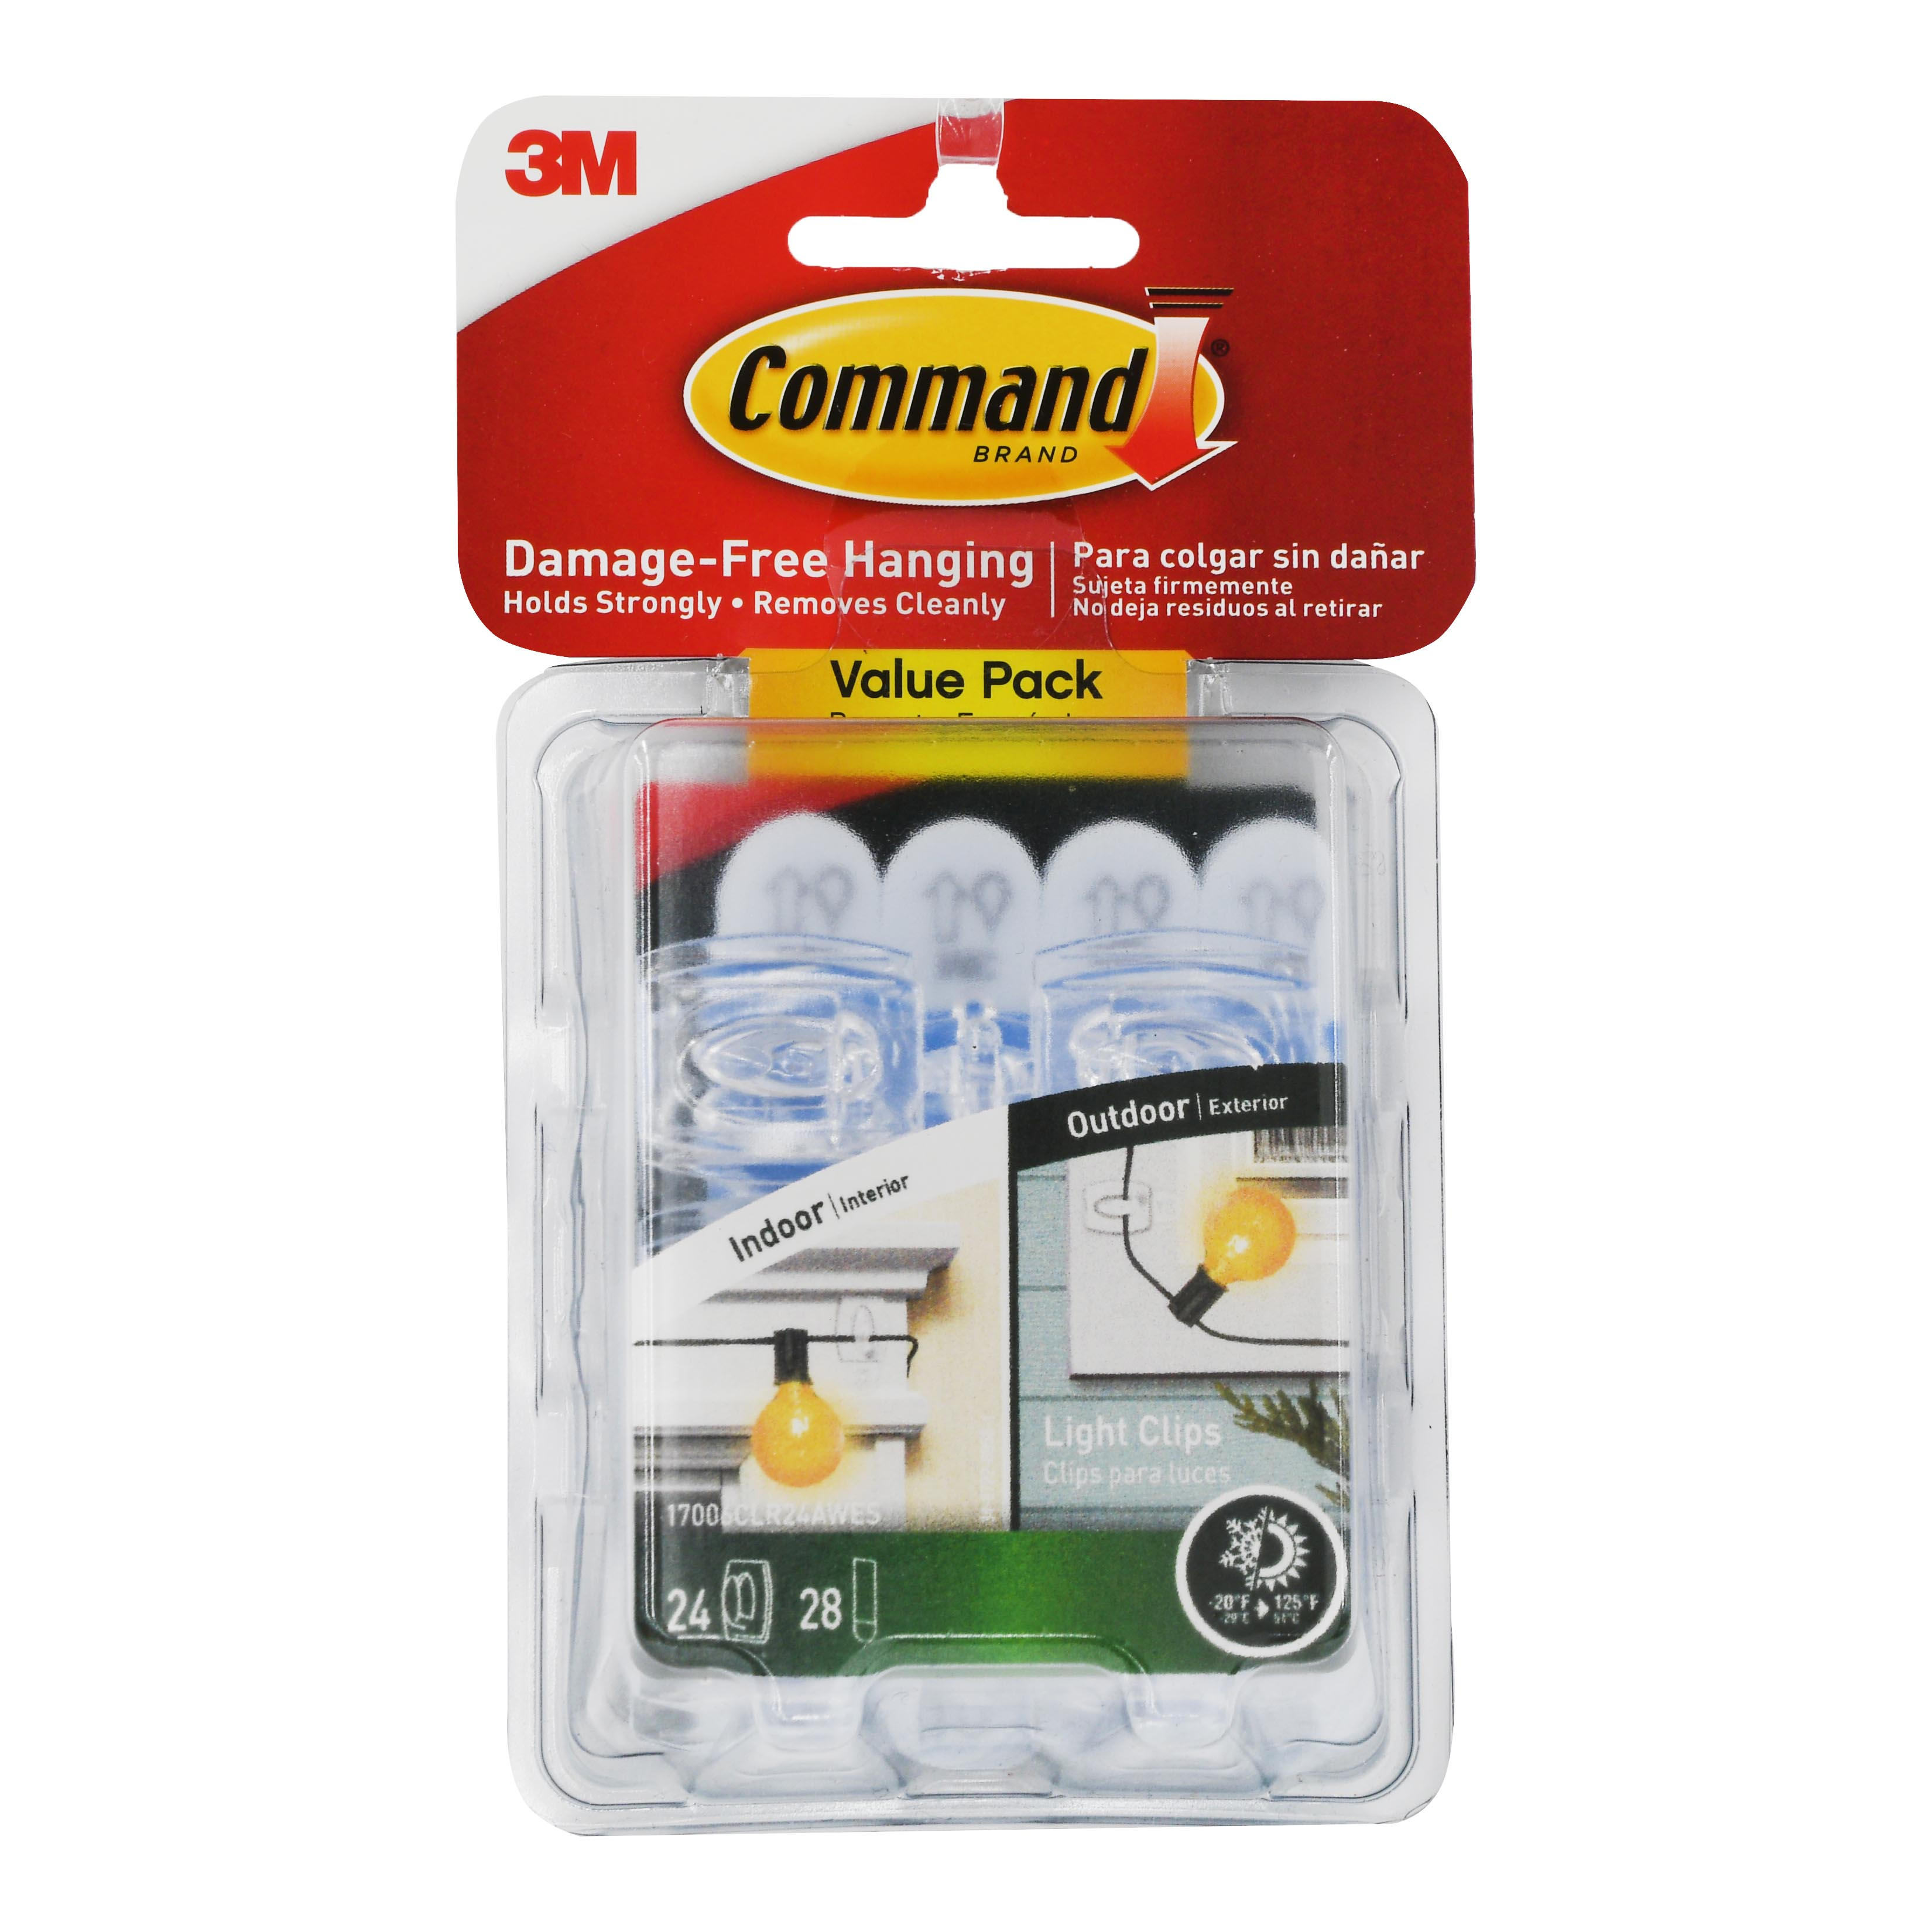 Command Indoor/Outdoor Light Clips, 24 hooks, 28 strips